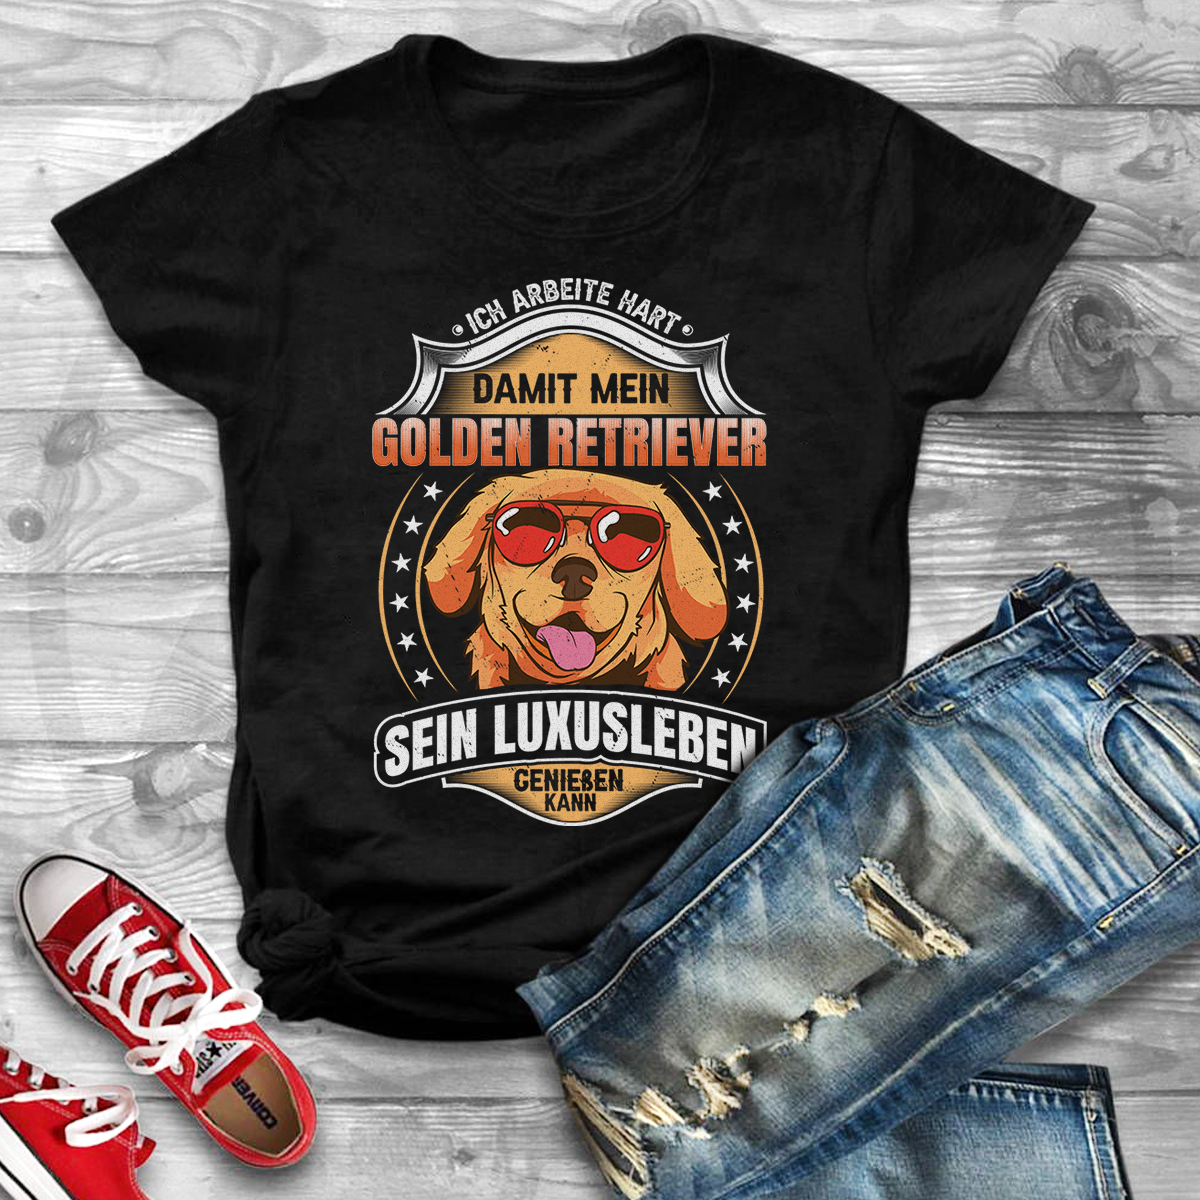 Buy 2 get 1 free Unique Amazing T-shirt Design with in 24hrs with Unlimited Revision